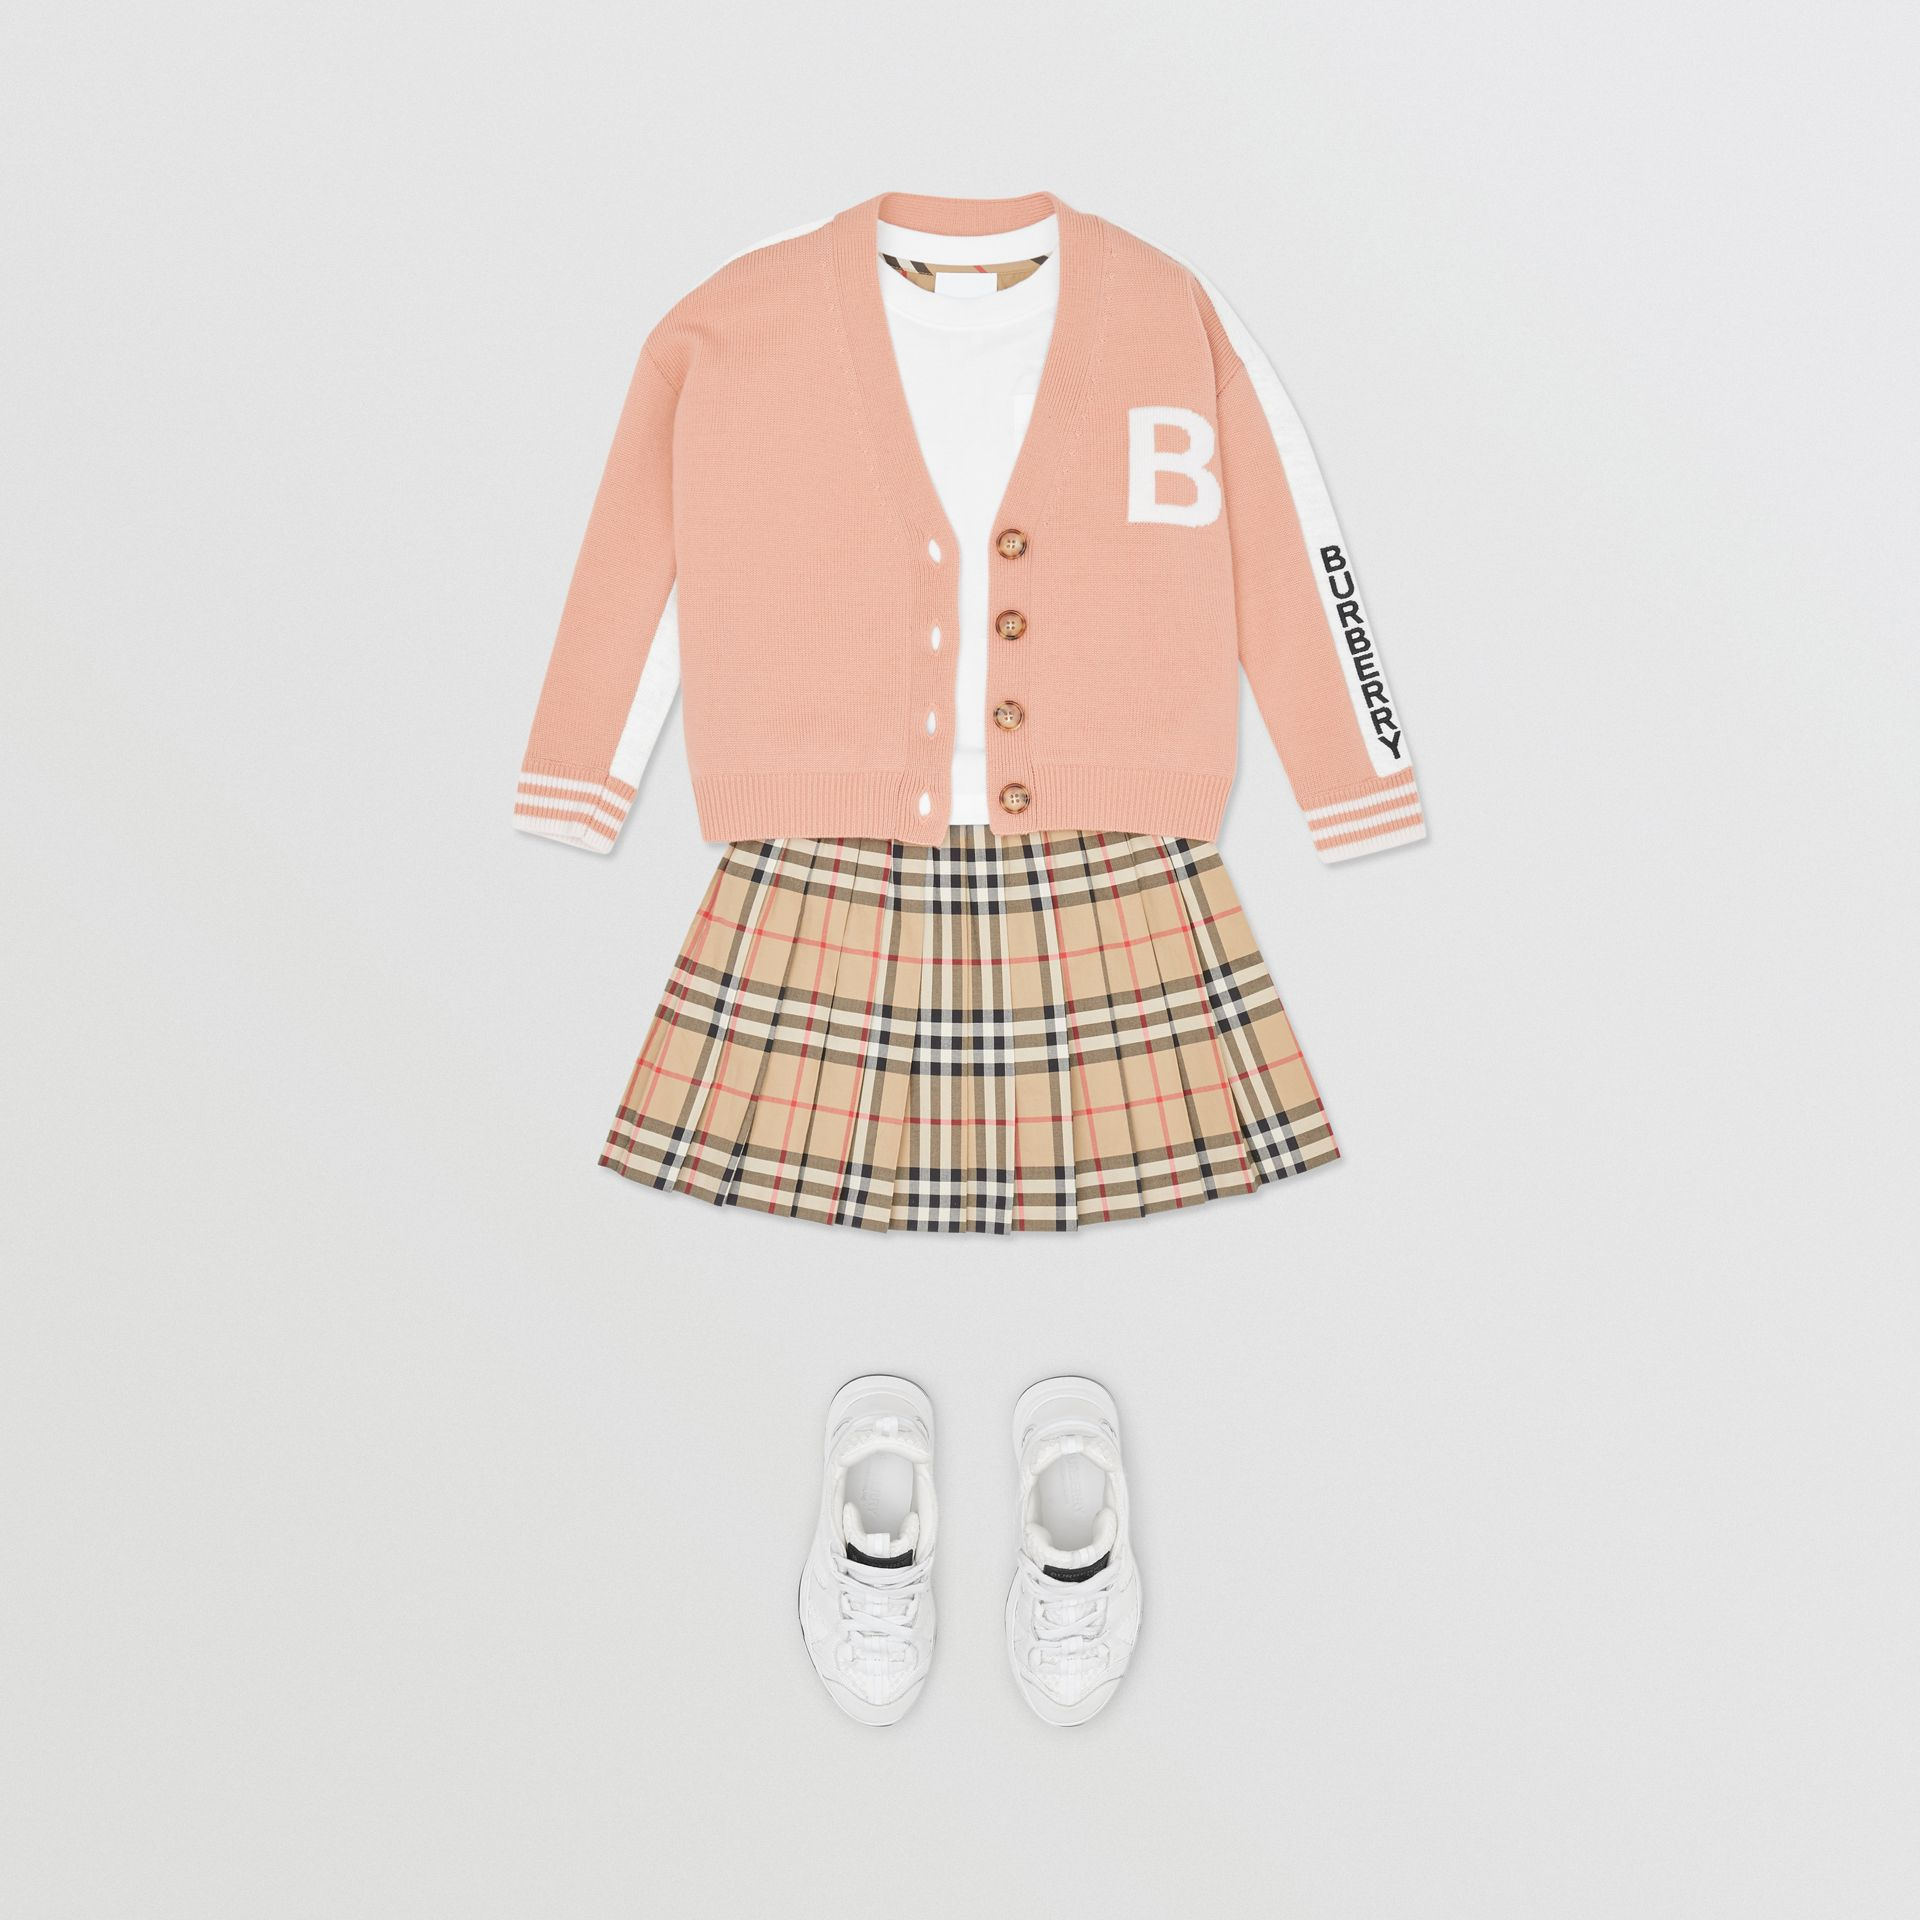 B Motif Merino Wool Jacquard Cardigan in Peach - Girl | Burberry - gallery image 2